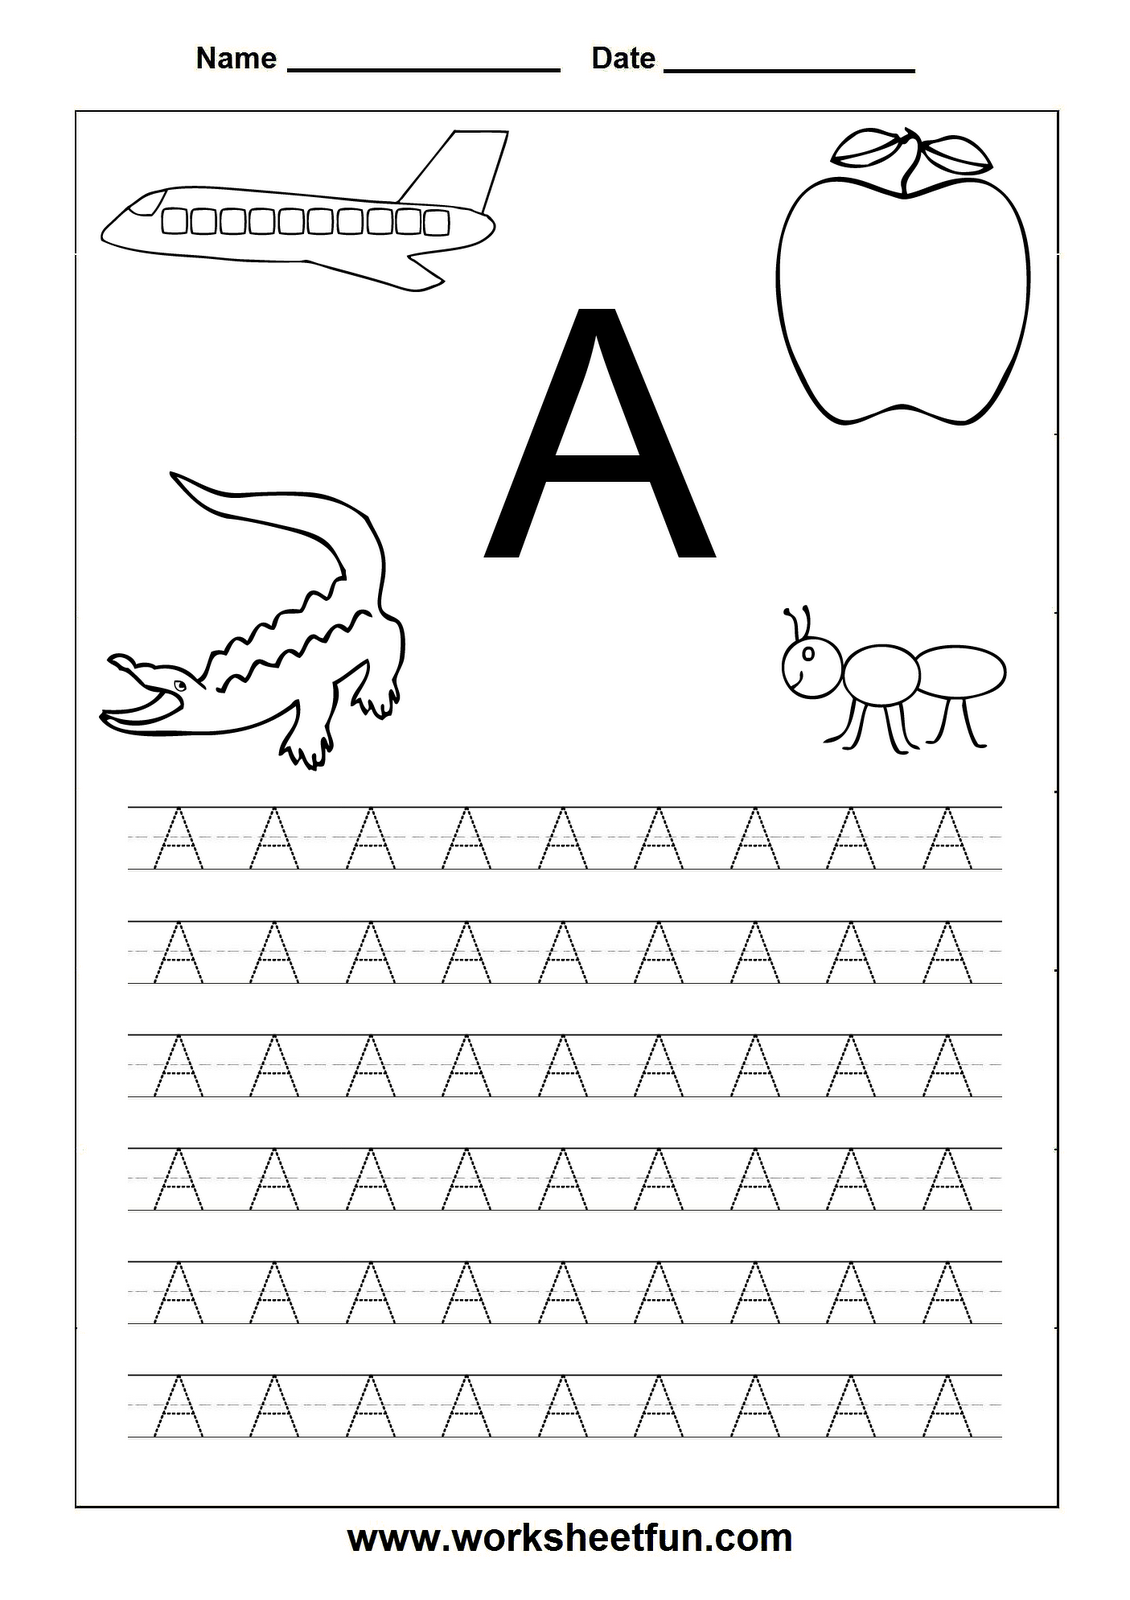 Worksheet Free Abc Worksheets For Pre-k 1000 images about toddler worksheets on pinterest alphabet preschool and preschool